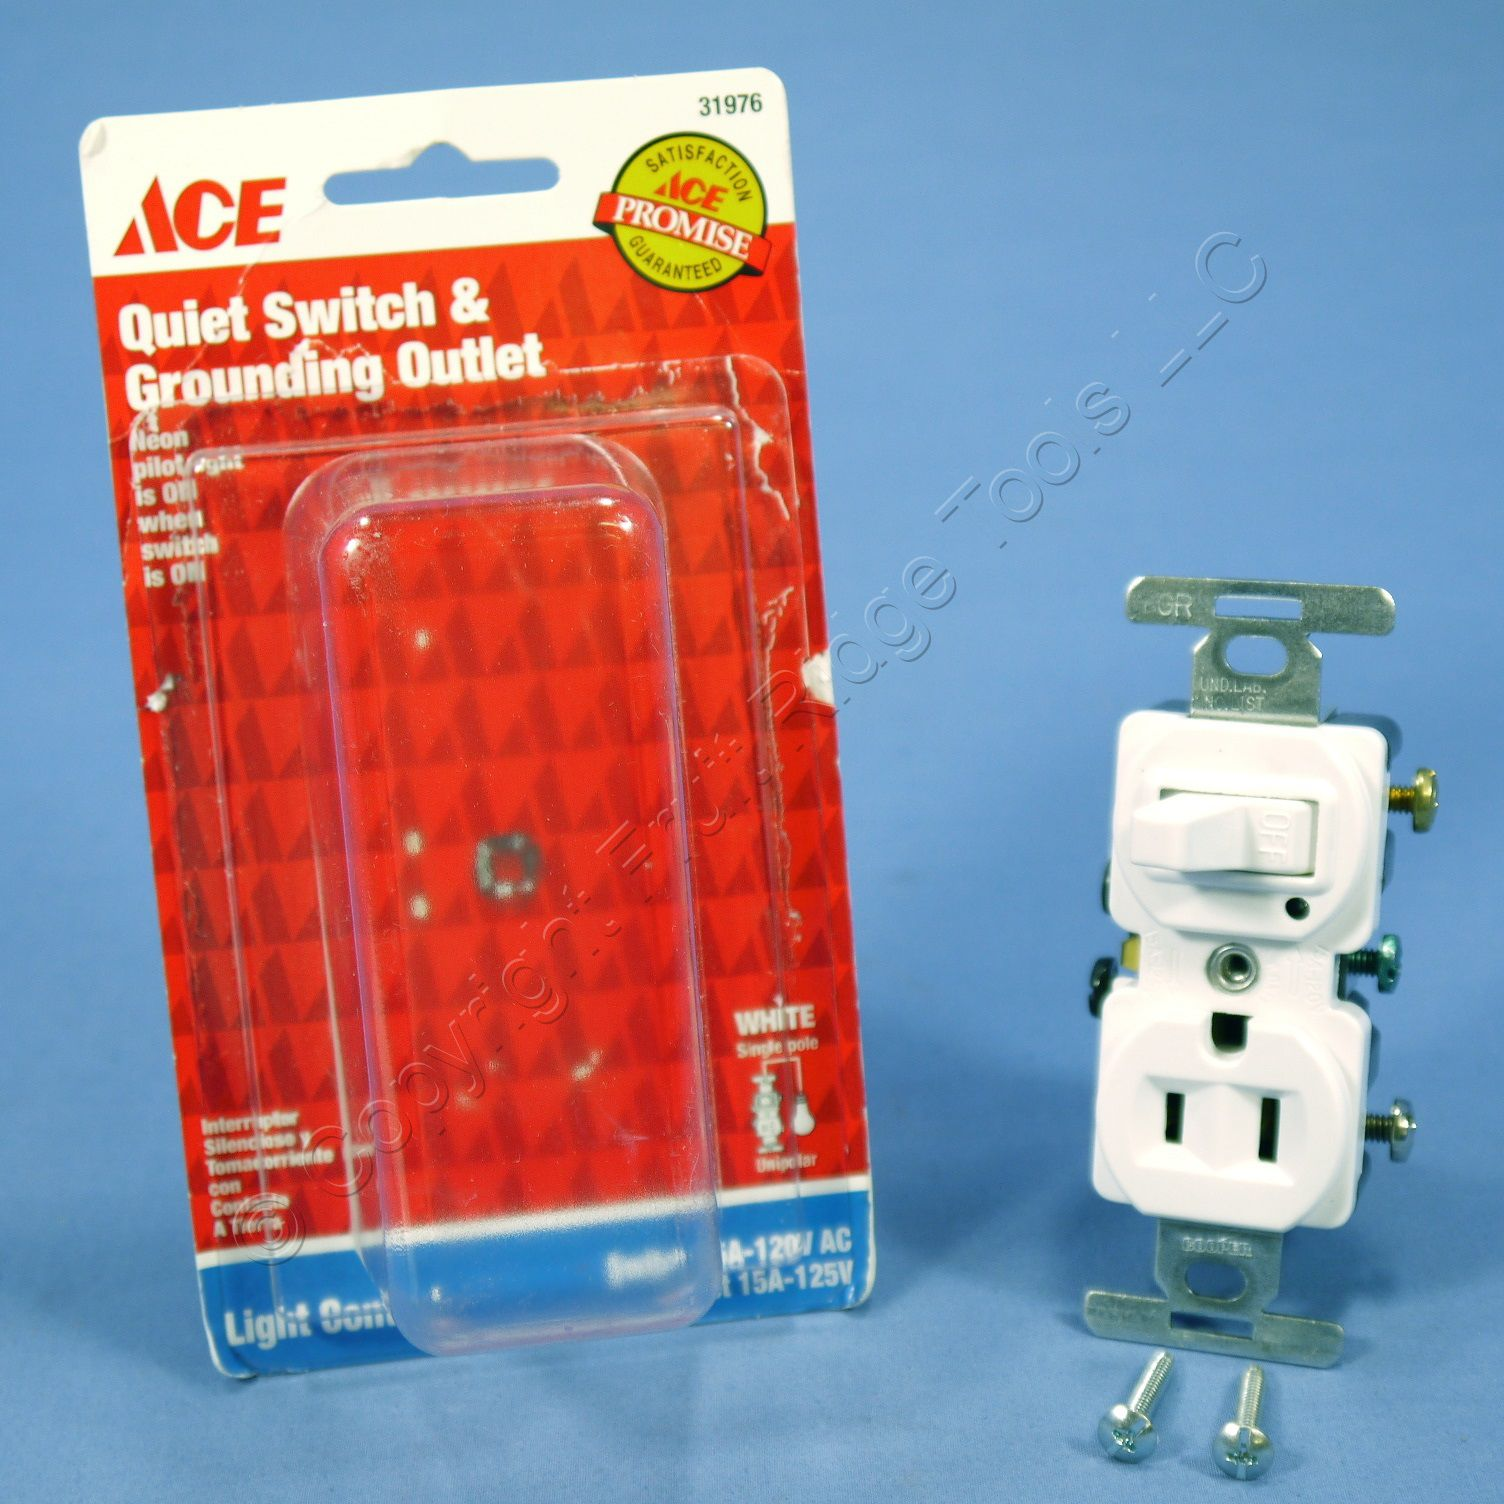 Ace White Pilot Light Toggle Switch Wall Outlet Receptacle 31976 eBay